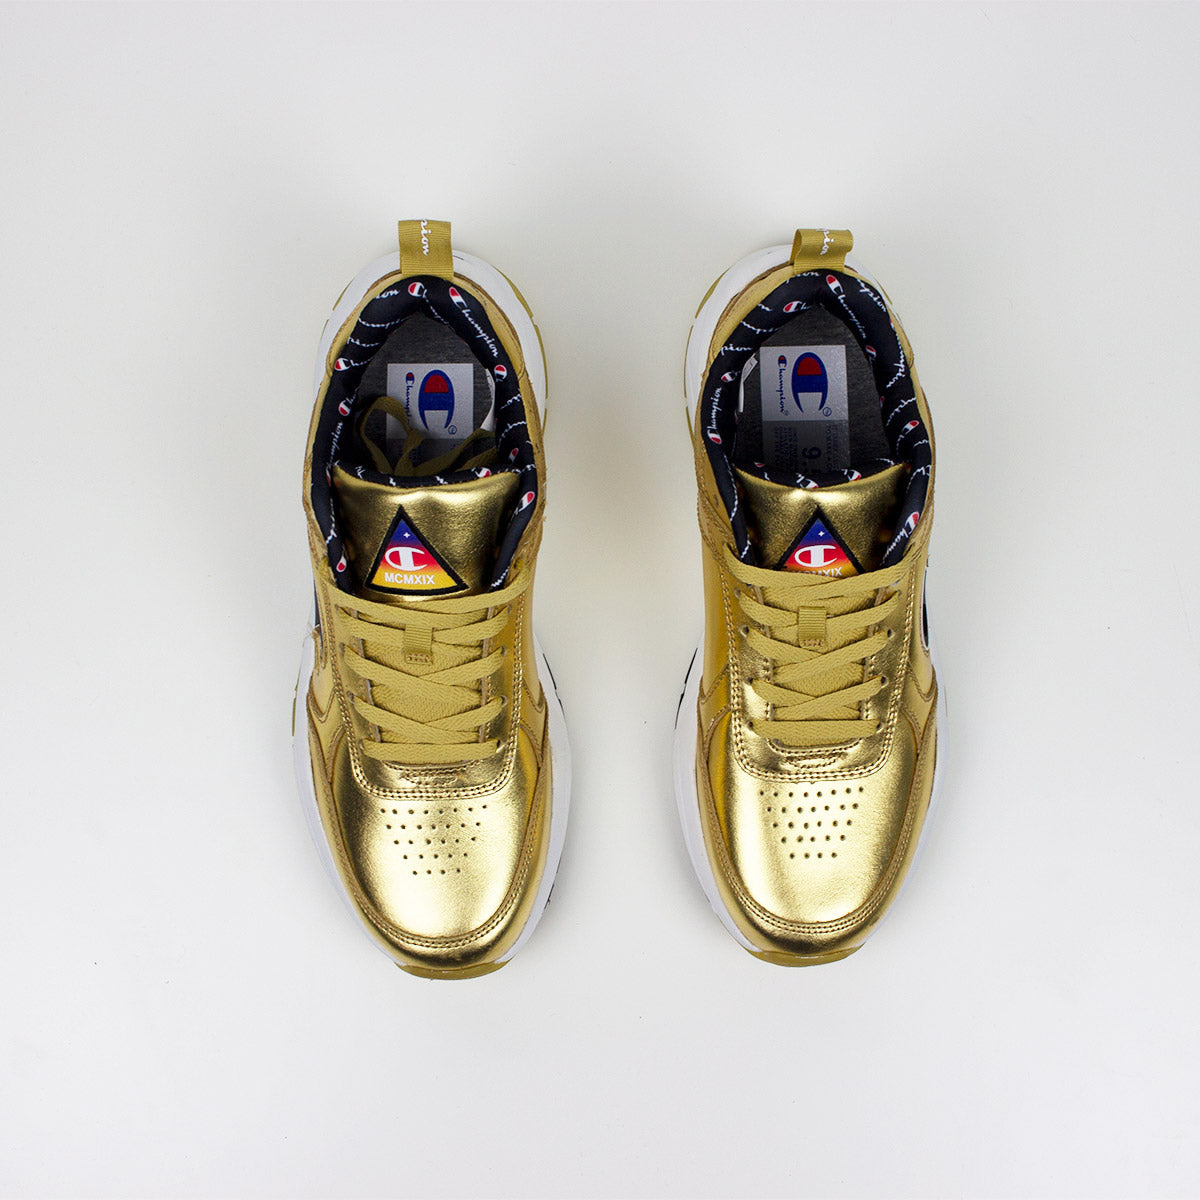 68dbbe8beaf Champion 93 Eighteen Metallic Gold Sneakers